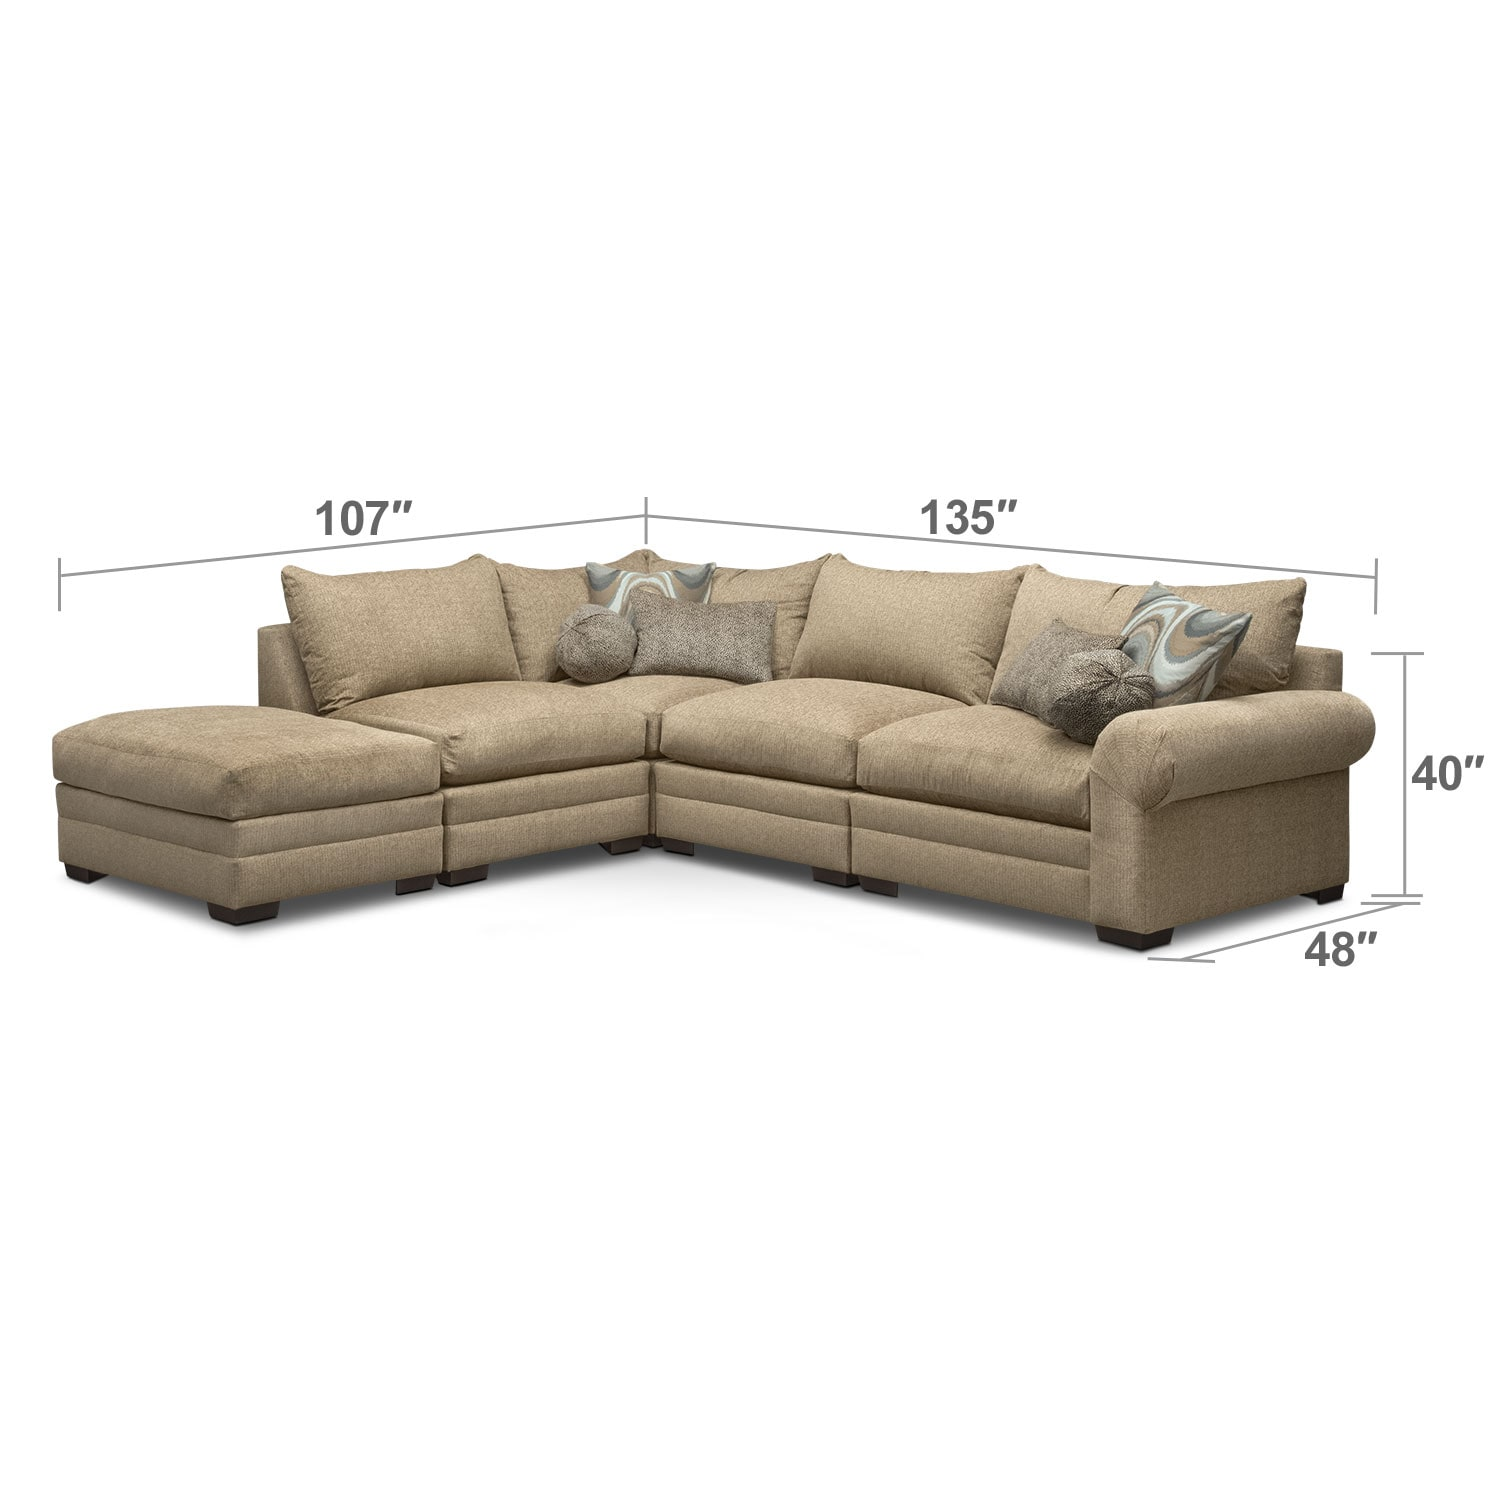 Living Room Furniture - Wilshire 5-Piece Left-Facing Sectional - Taupe